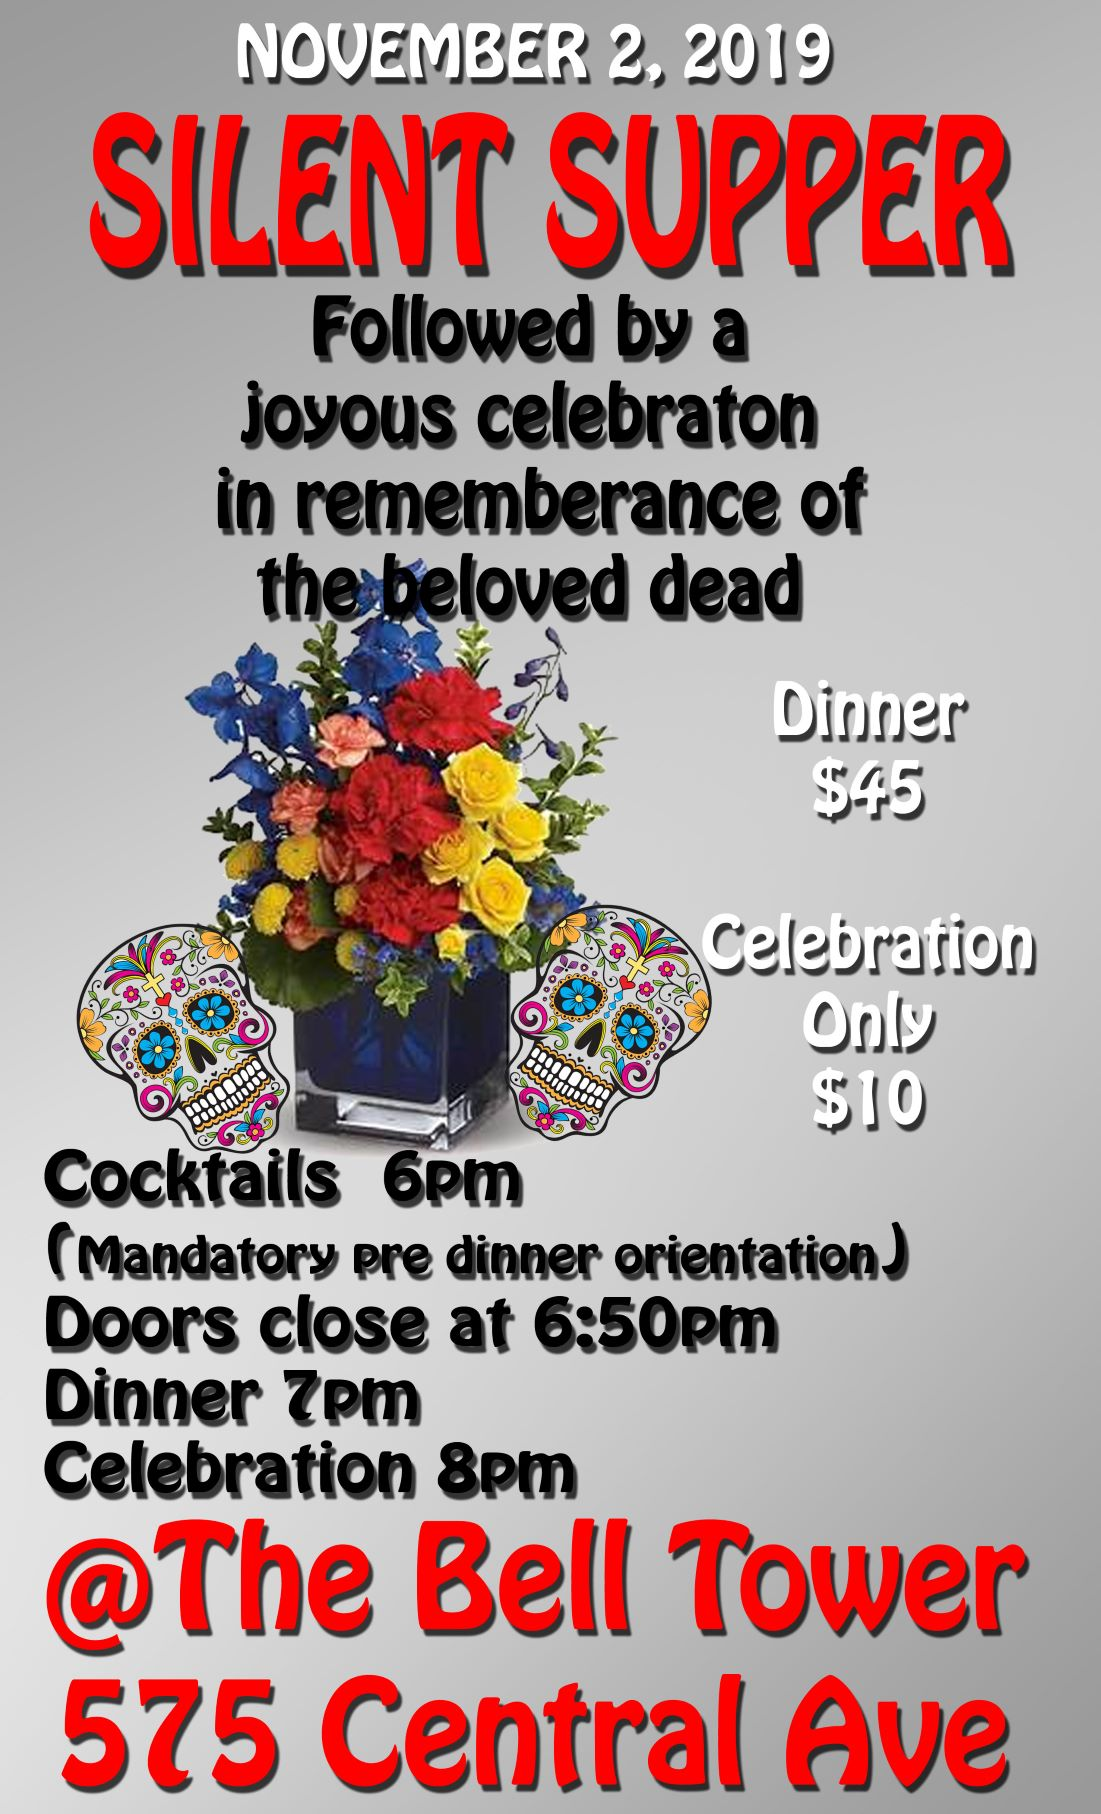 Silent Supper and Celebration - Remembrance of the beloved dead